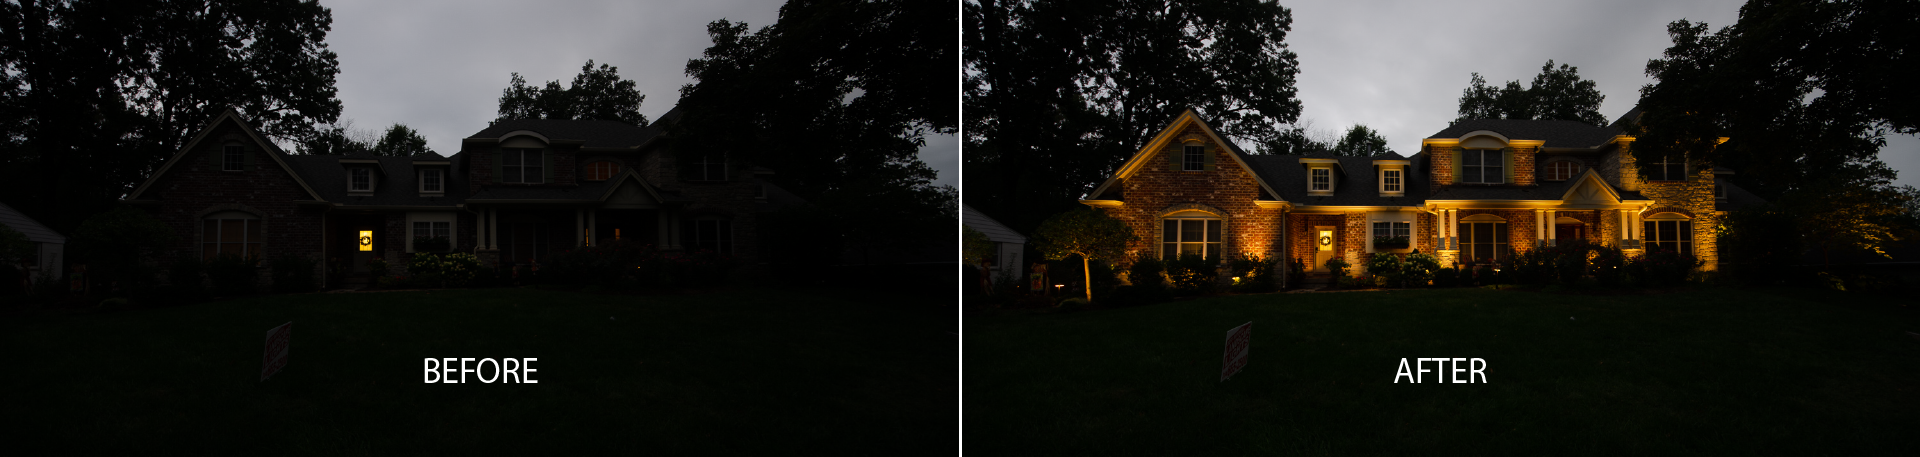 Before and After Home with Landscape Lighting